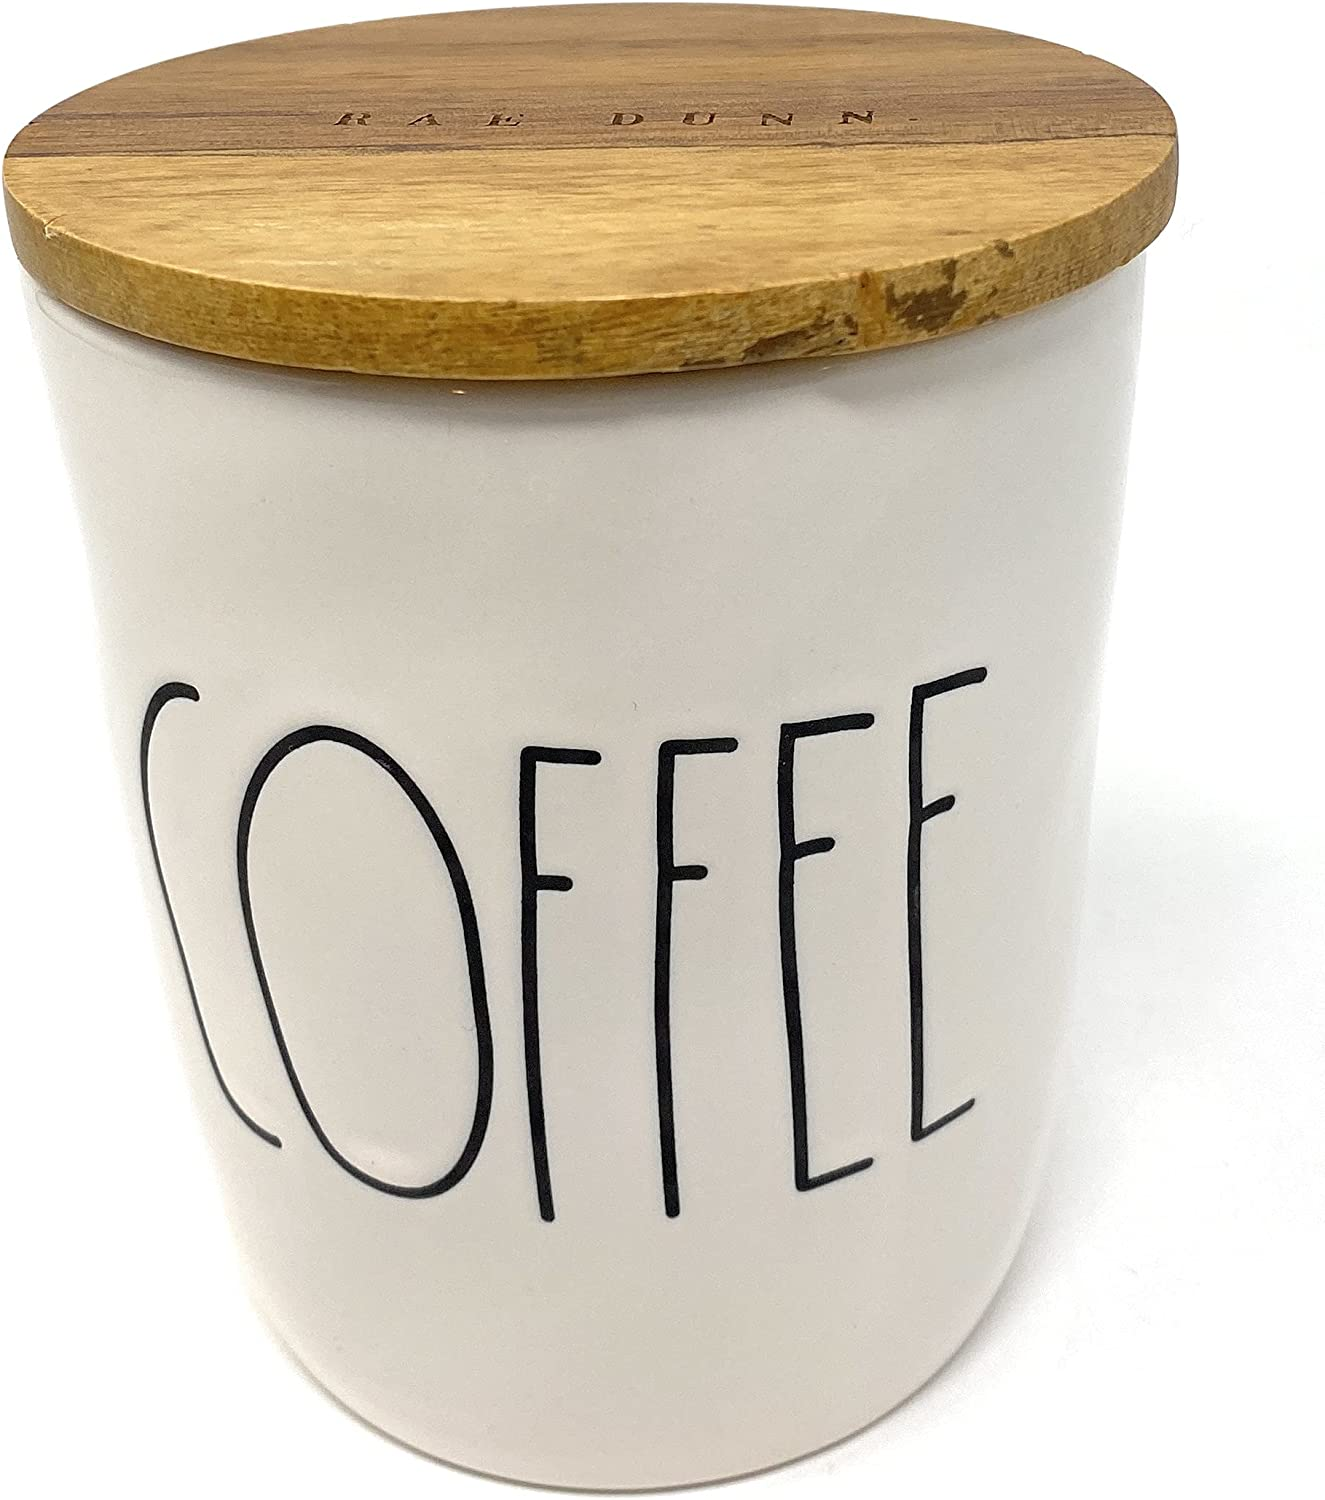 Rae Dunn COFFEE White Ceramic Canister with Wood Lid